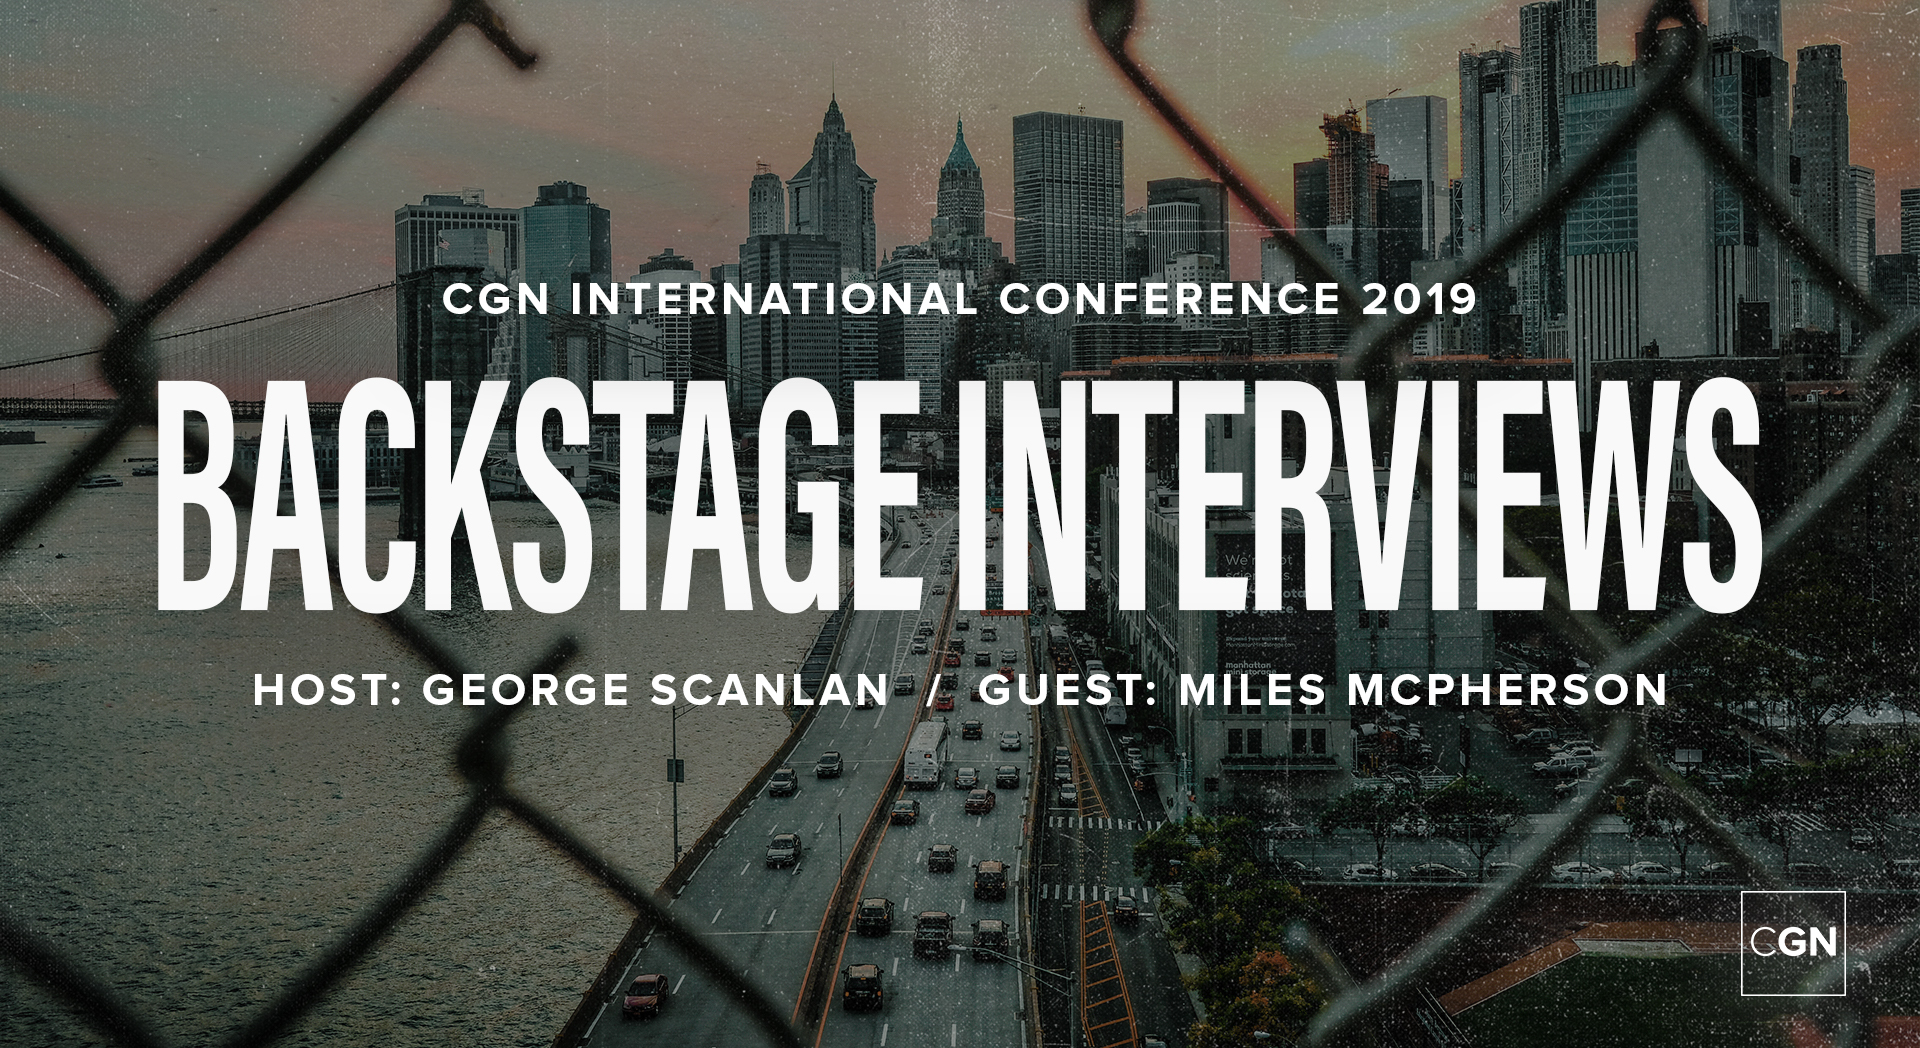 Backstage Interview - Miles McPherson